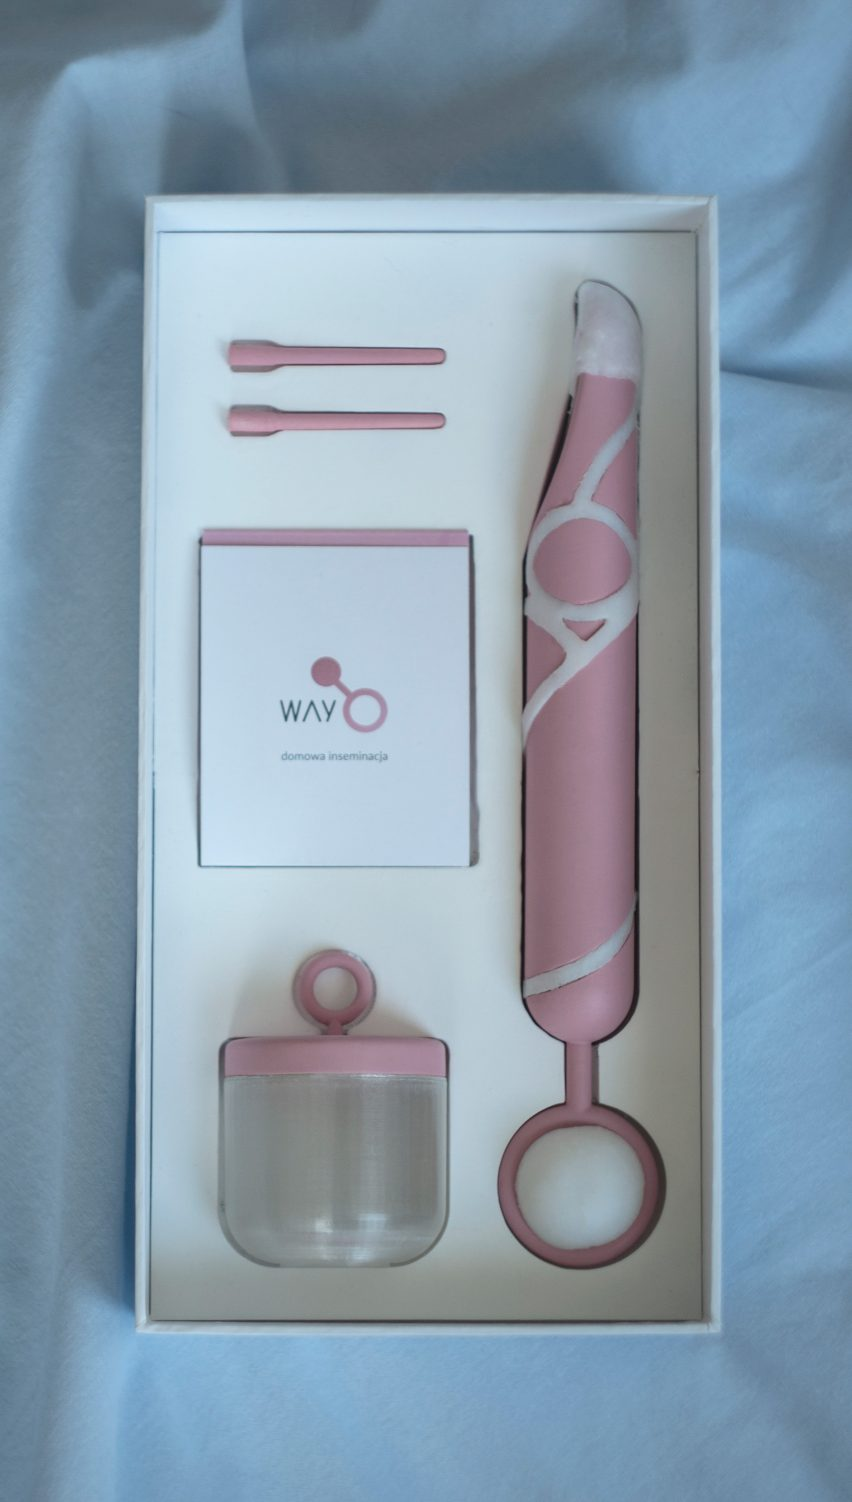 Kamila Rudnicka designs home insemination kit for use as part of sex